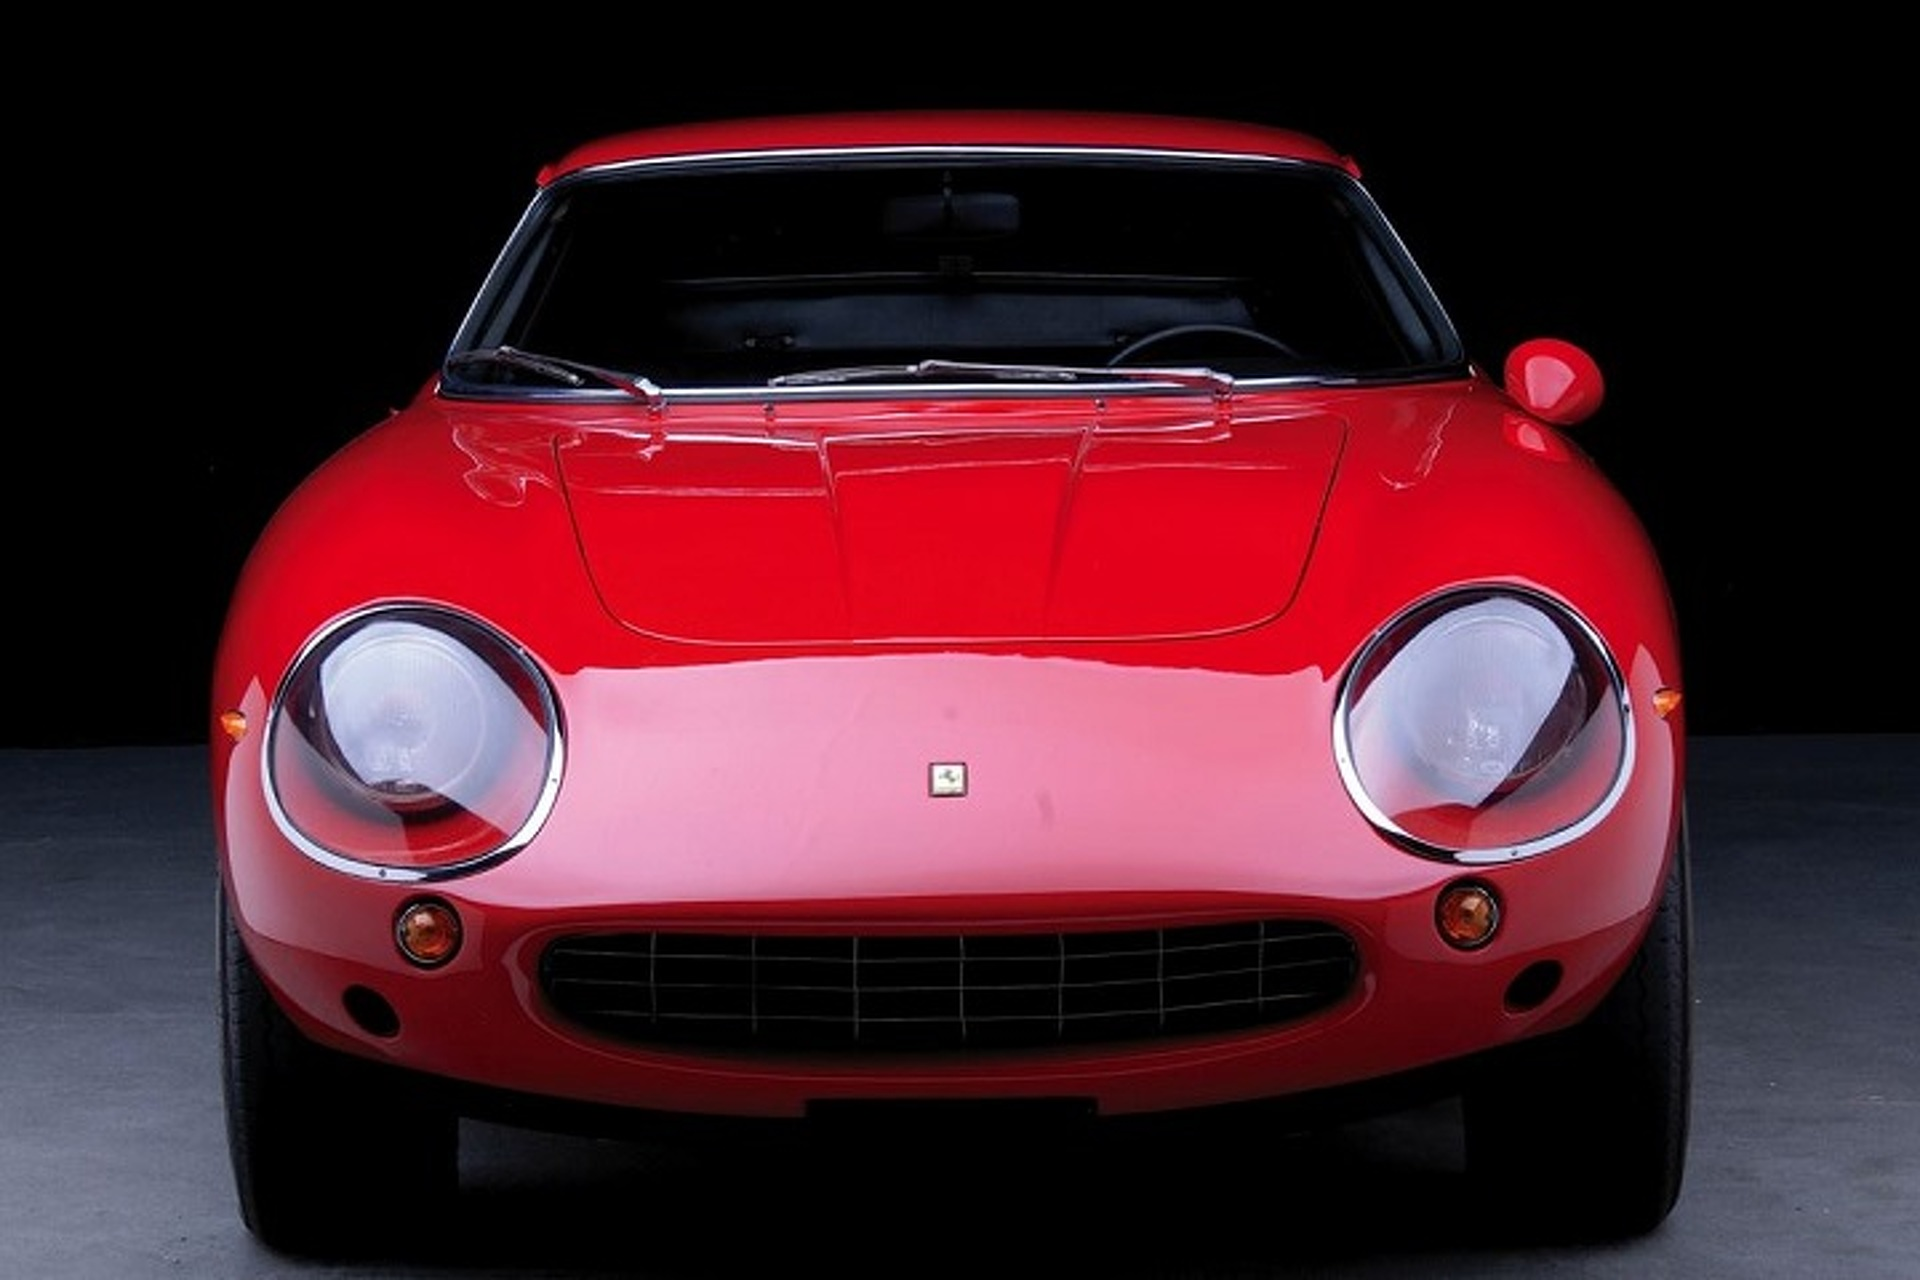 The Timeless Ferrari 275 GTB/4 Berlinetta